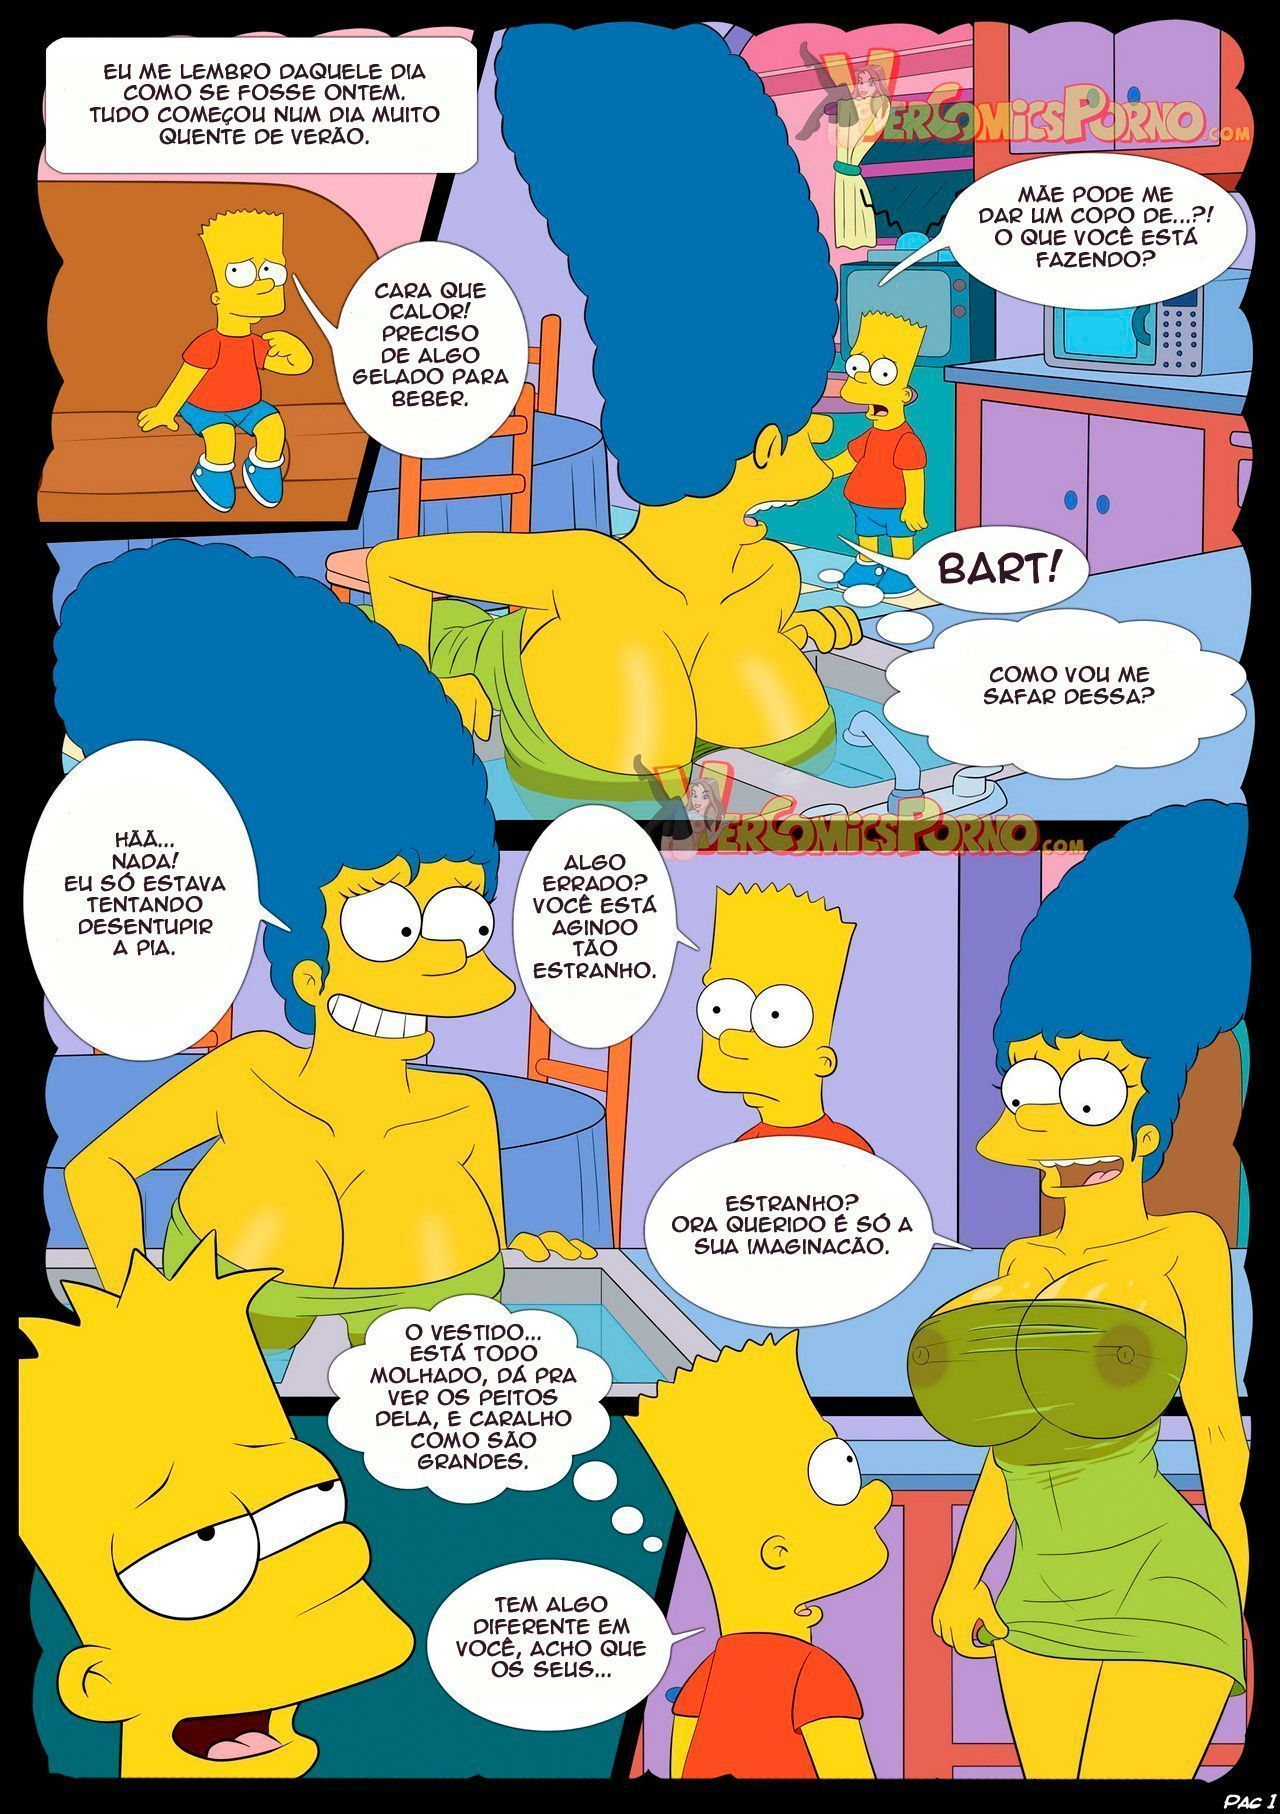 Remarkable, porno simpsons agree, rather